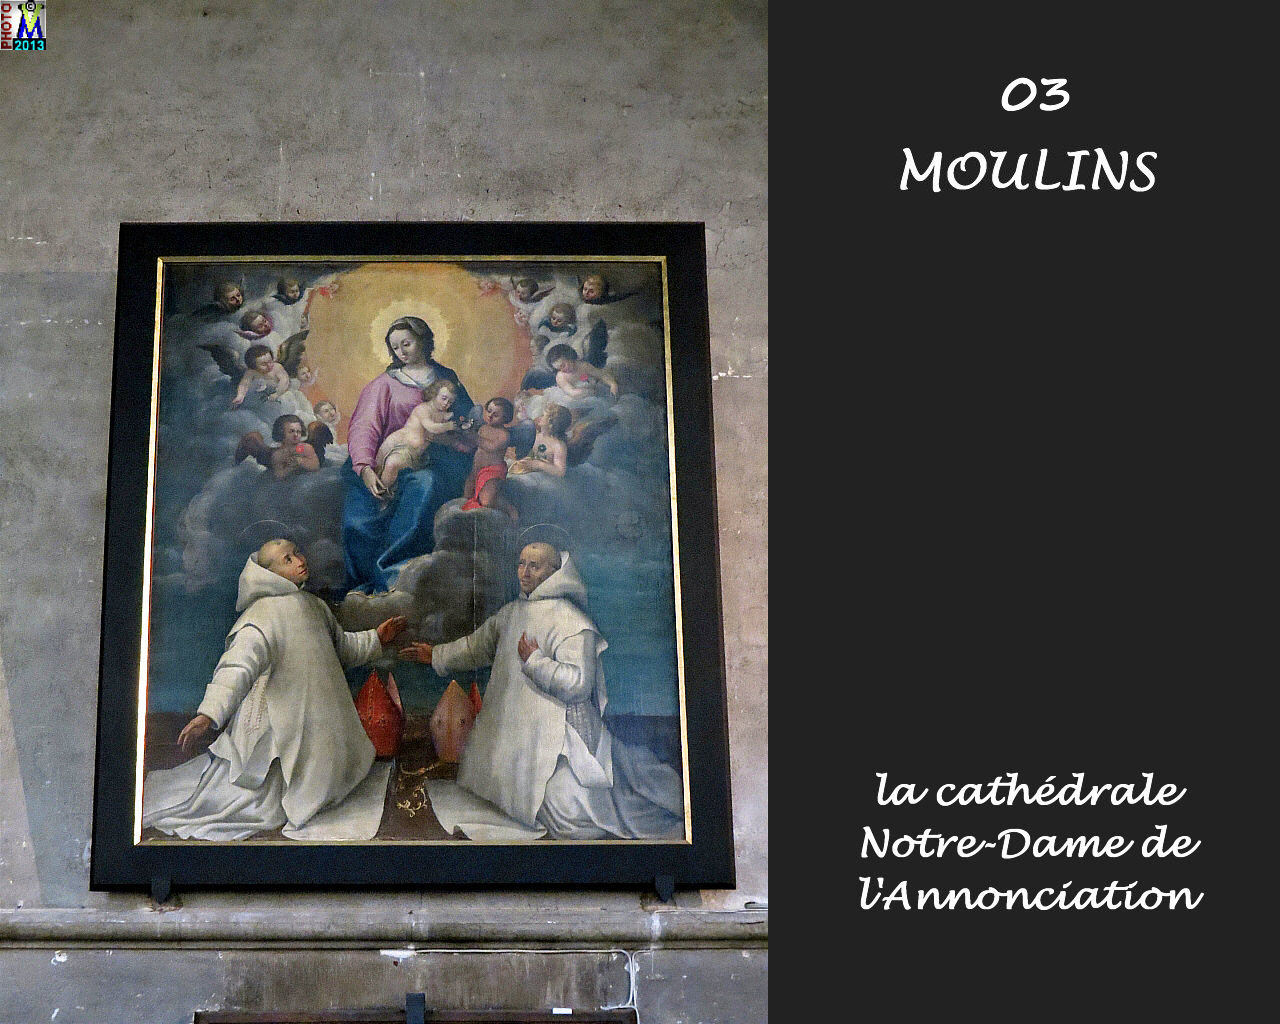 03MOULINS_cathedrale_268.jpg